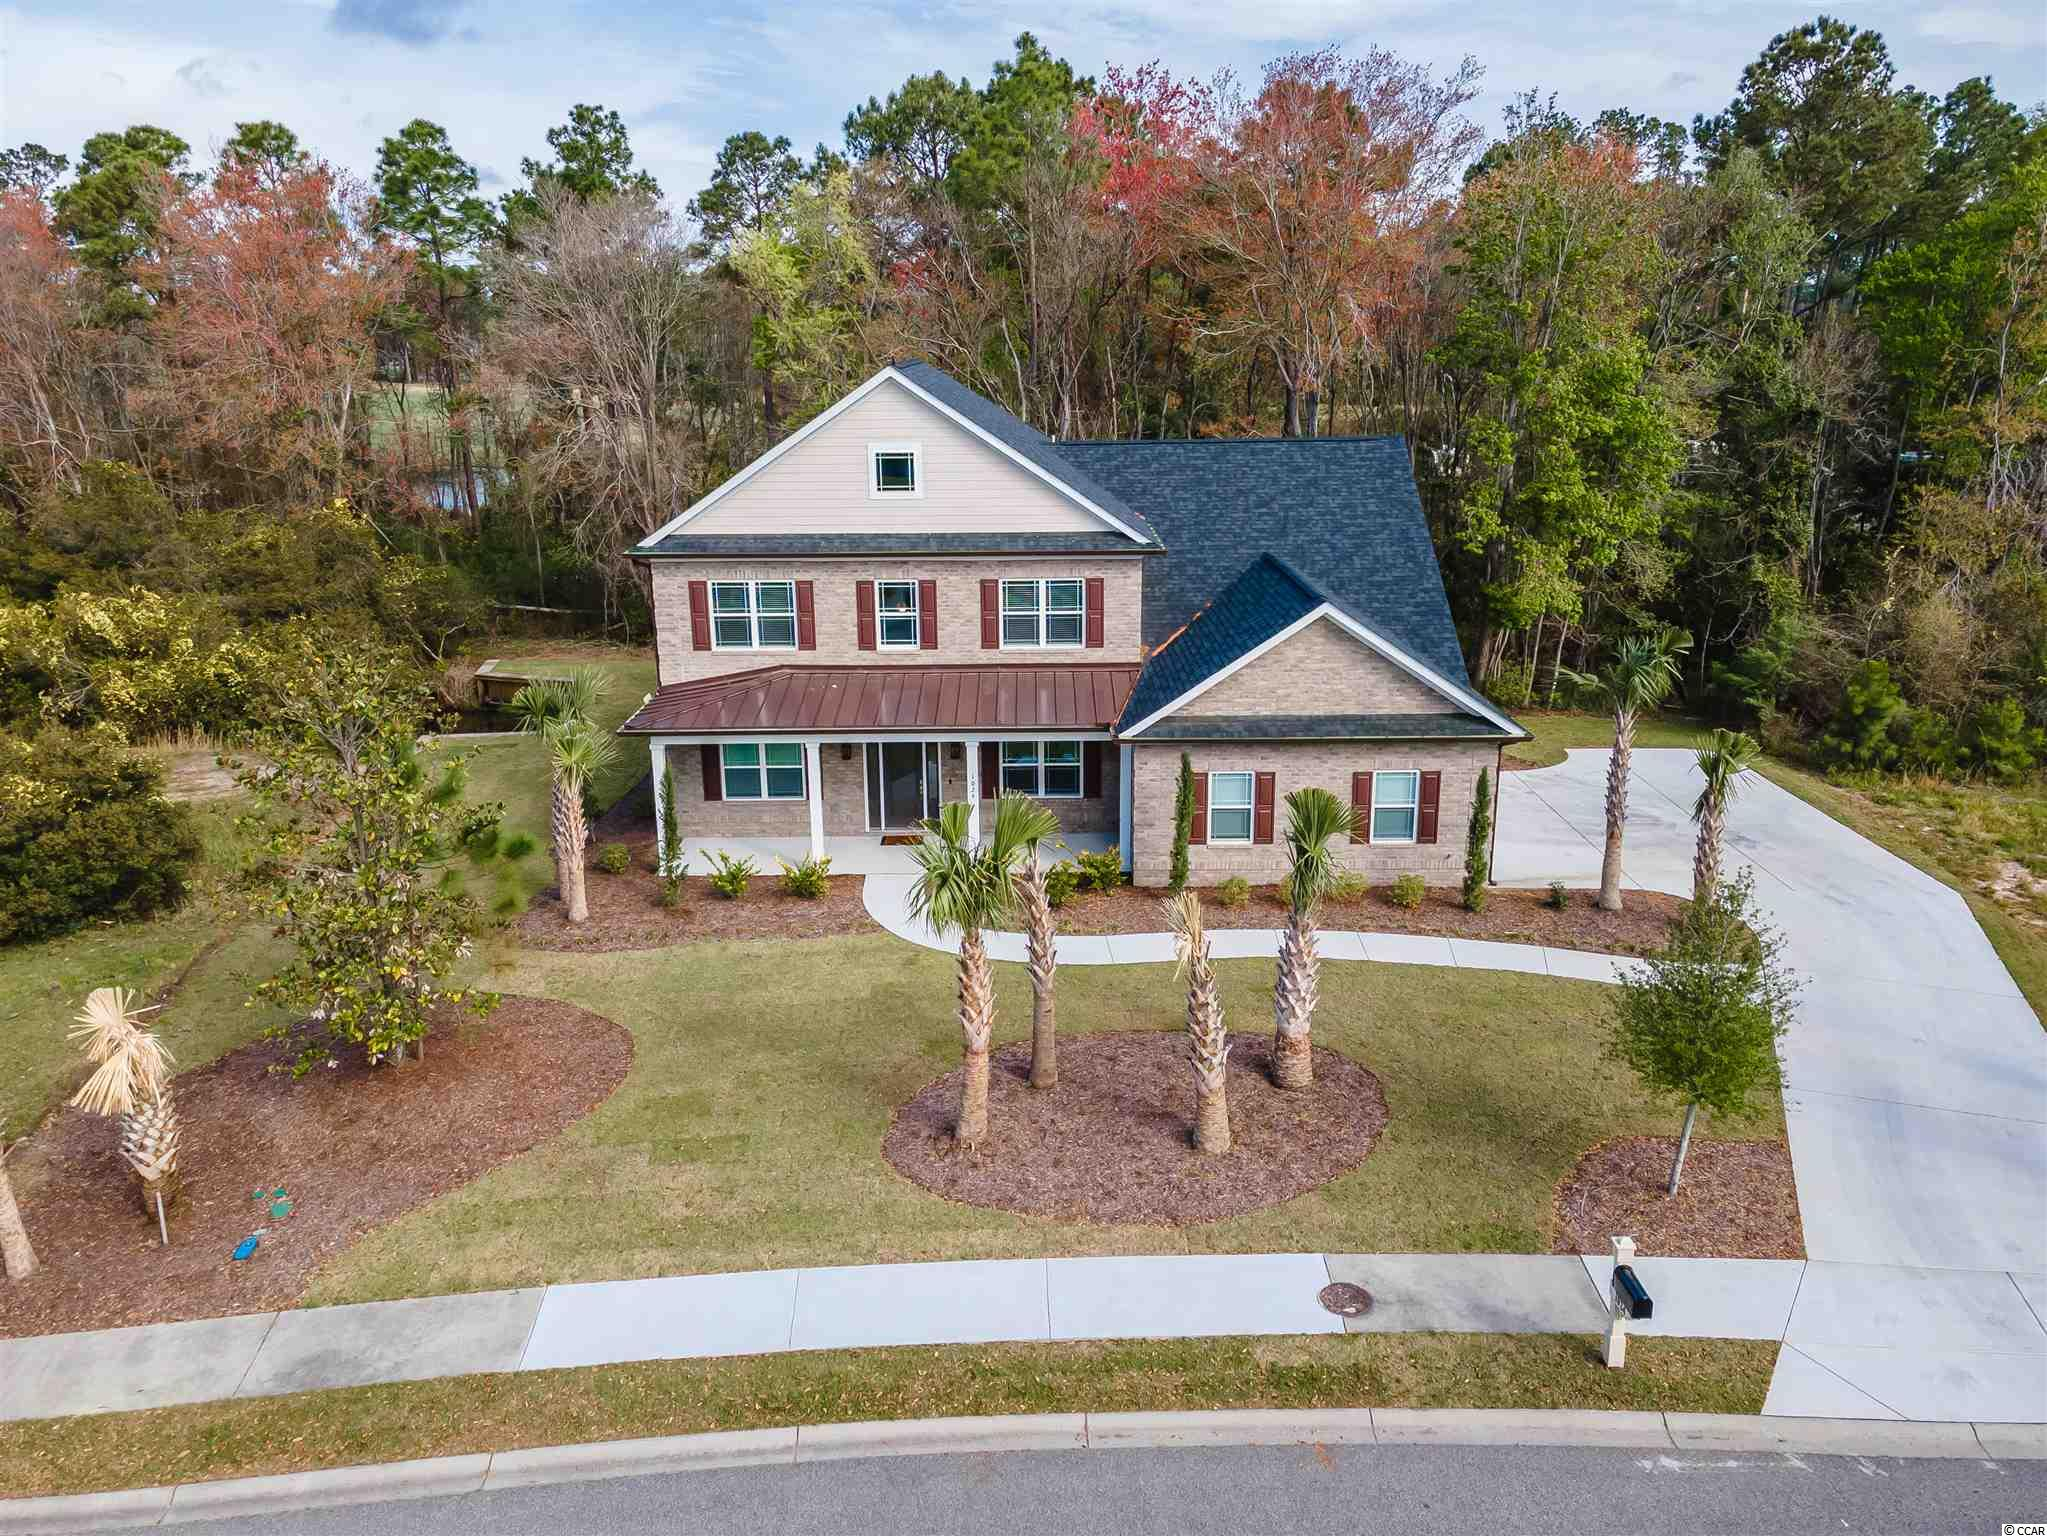 Don't miss out on this AMAZING all brick CUSTOM home in the heart of Wild Wing Plantation.  Built in 2020, this home features an open floor plan, water views, luxury vinyl plank flooring and custom finishes throughout.  The kitchen is a chef's dream with custom cabinets, granite countertops, double ovens, top of the line stainless steel appliances, and a huge work island perfect for gathering the family around.  Multi-glide sliding doors lead from the kitchen onto the screened in porch, overlooking the private back yard with water views.   The master bedroom features double tray ceilings, a walk-in closet, en-suite bathroom, and opens to the screened in porch.  The spa-like master bath has a walk in shower which features custom tile throughout, dual sinks, and a separate soaking tub perfect for relaxing after a long day on the beach.  The first floor also features double doors leading into a separate office space.  The upstairs has three oversized bedrooms, two full bathrooms and a bonus room.  The bonus room is the perfect size for a pool table and has a balcony overlooking the expansive lake views.  Wild Wing is a unique community which offers privacy, space, large lots and tons of amenities to its residents.  The community features a clubhouse, community pool, tennis courts, a playground and is a short ride to the beach and all the restaurants the Grand Strand has to offer.  This home won't last, schedule your showing today!